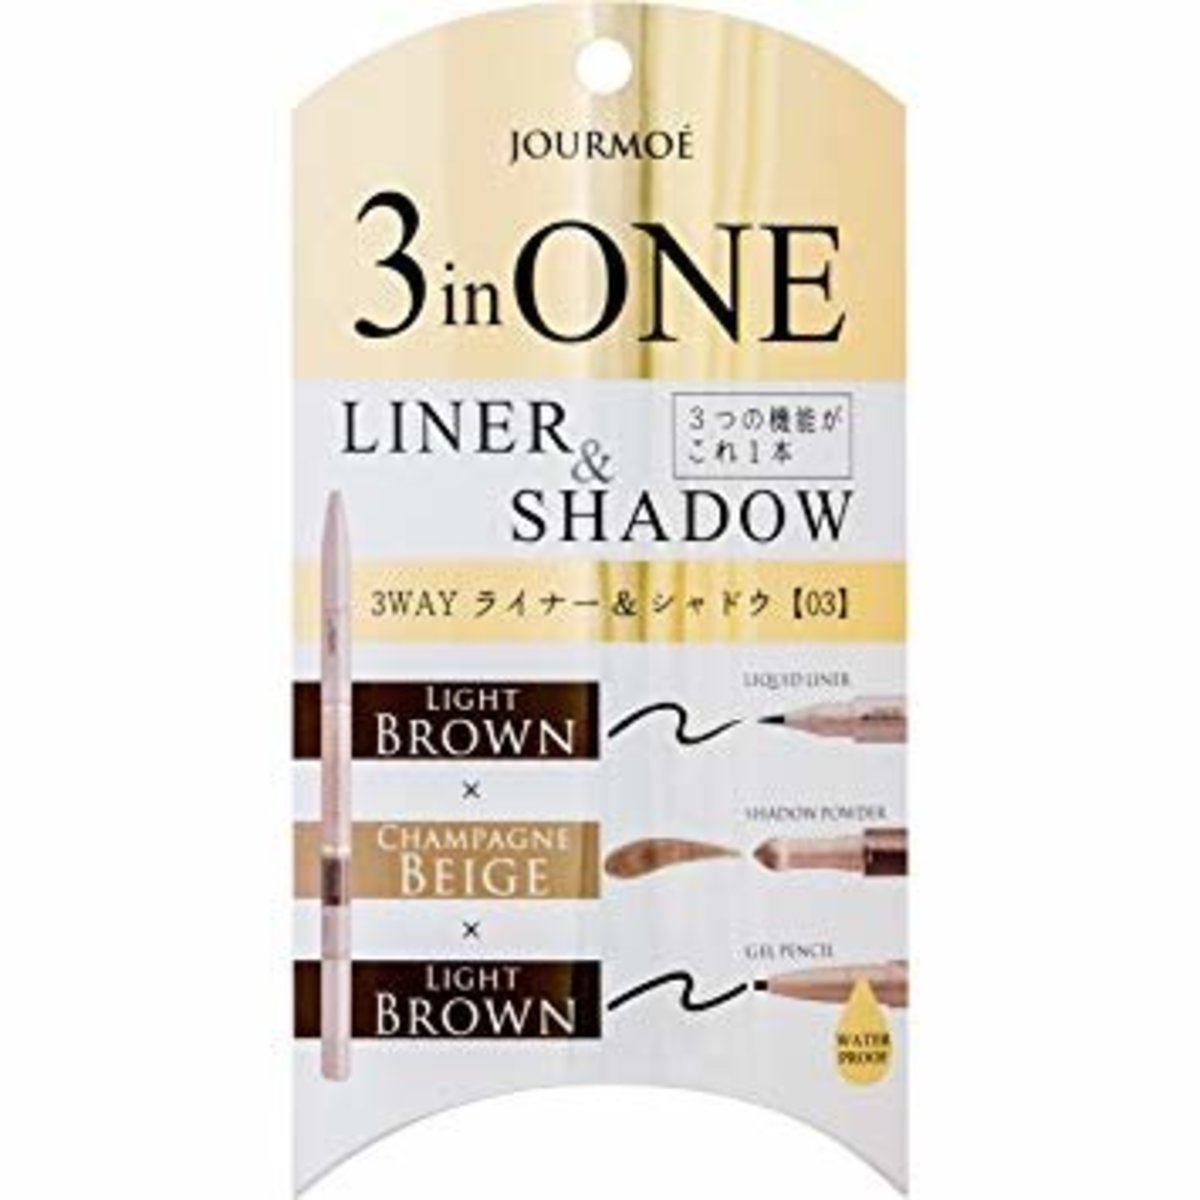 3 in 1 liner & shadow 03 NATURAL(4589607760037)